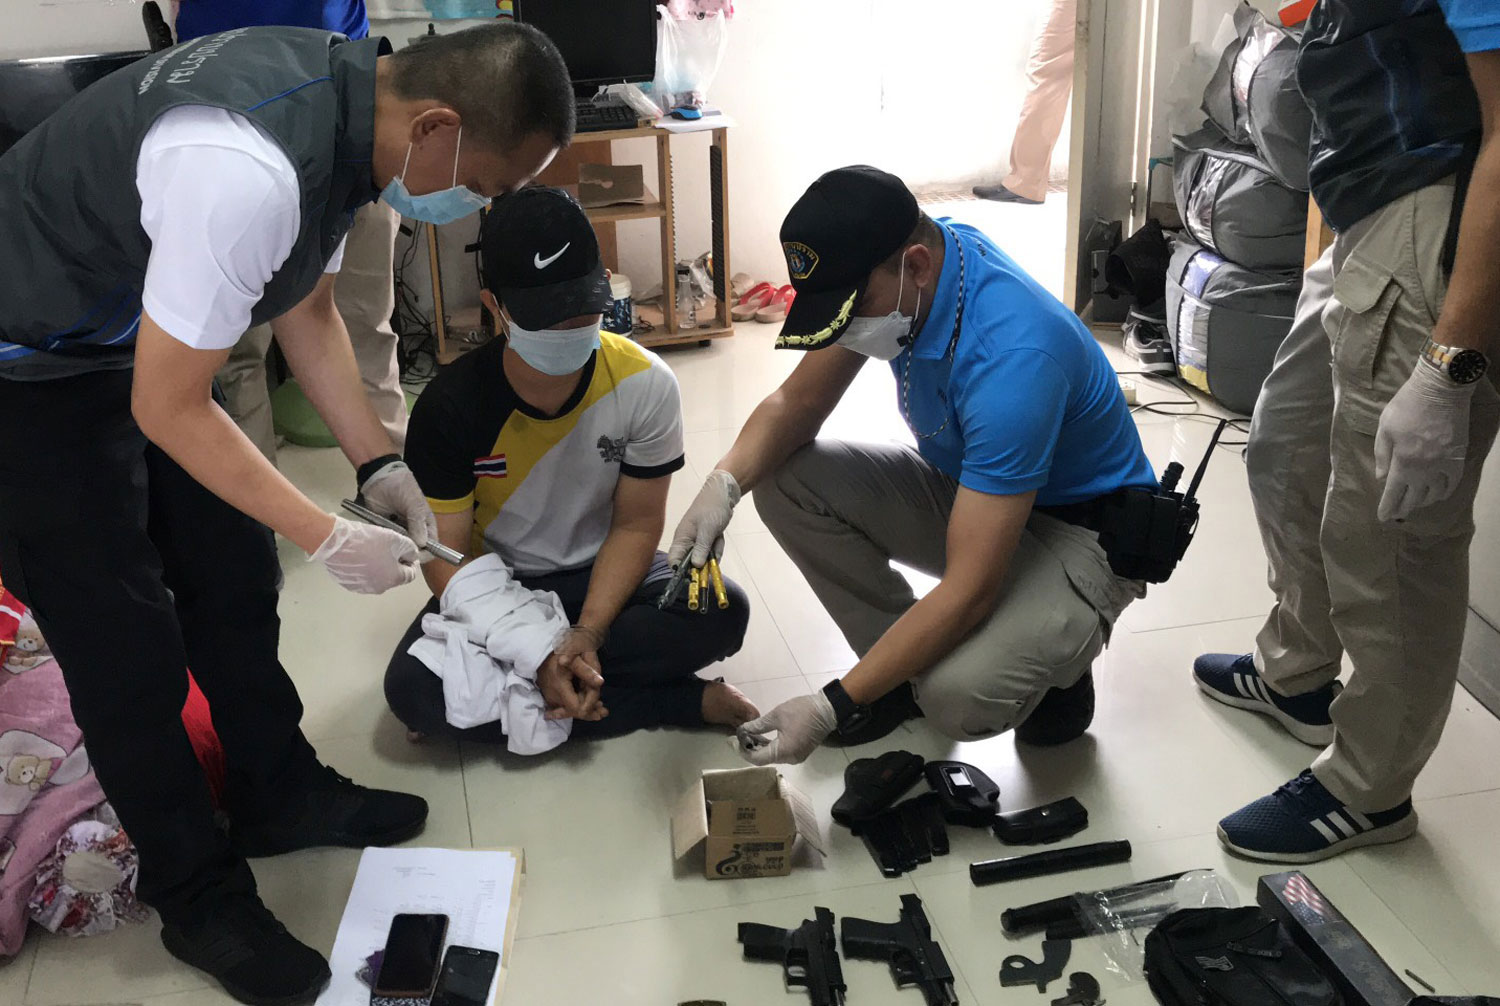 Suspect Prajak Phoonphian, 39, seated and handcuffed, after his arrest at his factory dormitory room in Nonthaburi's Pak Kret district on Thursday morning. (Photo supplied)